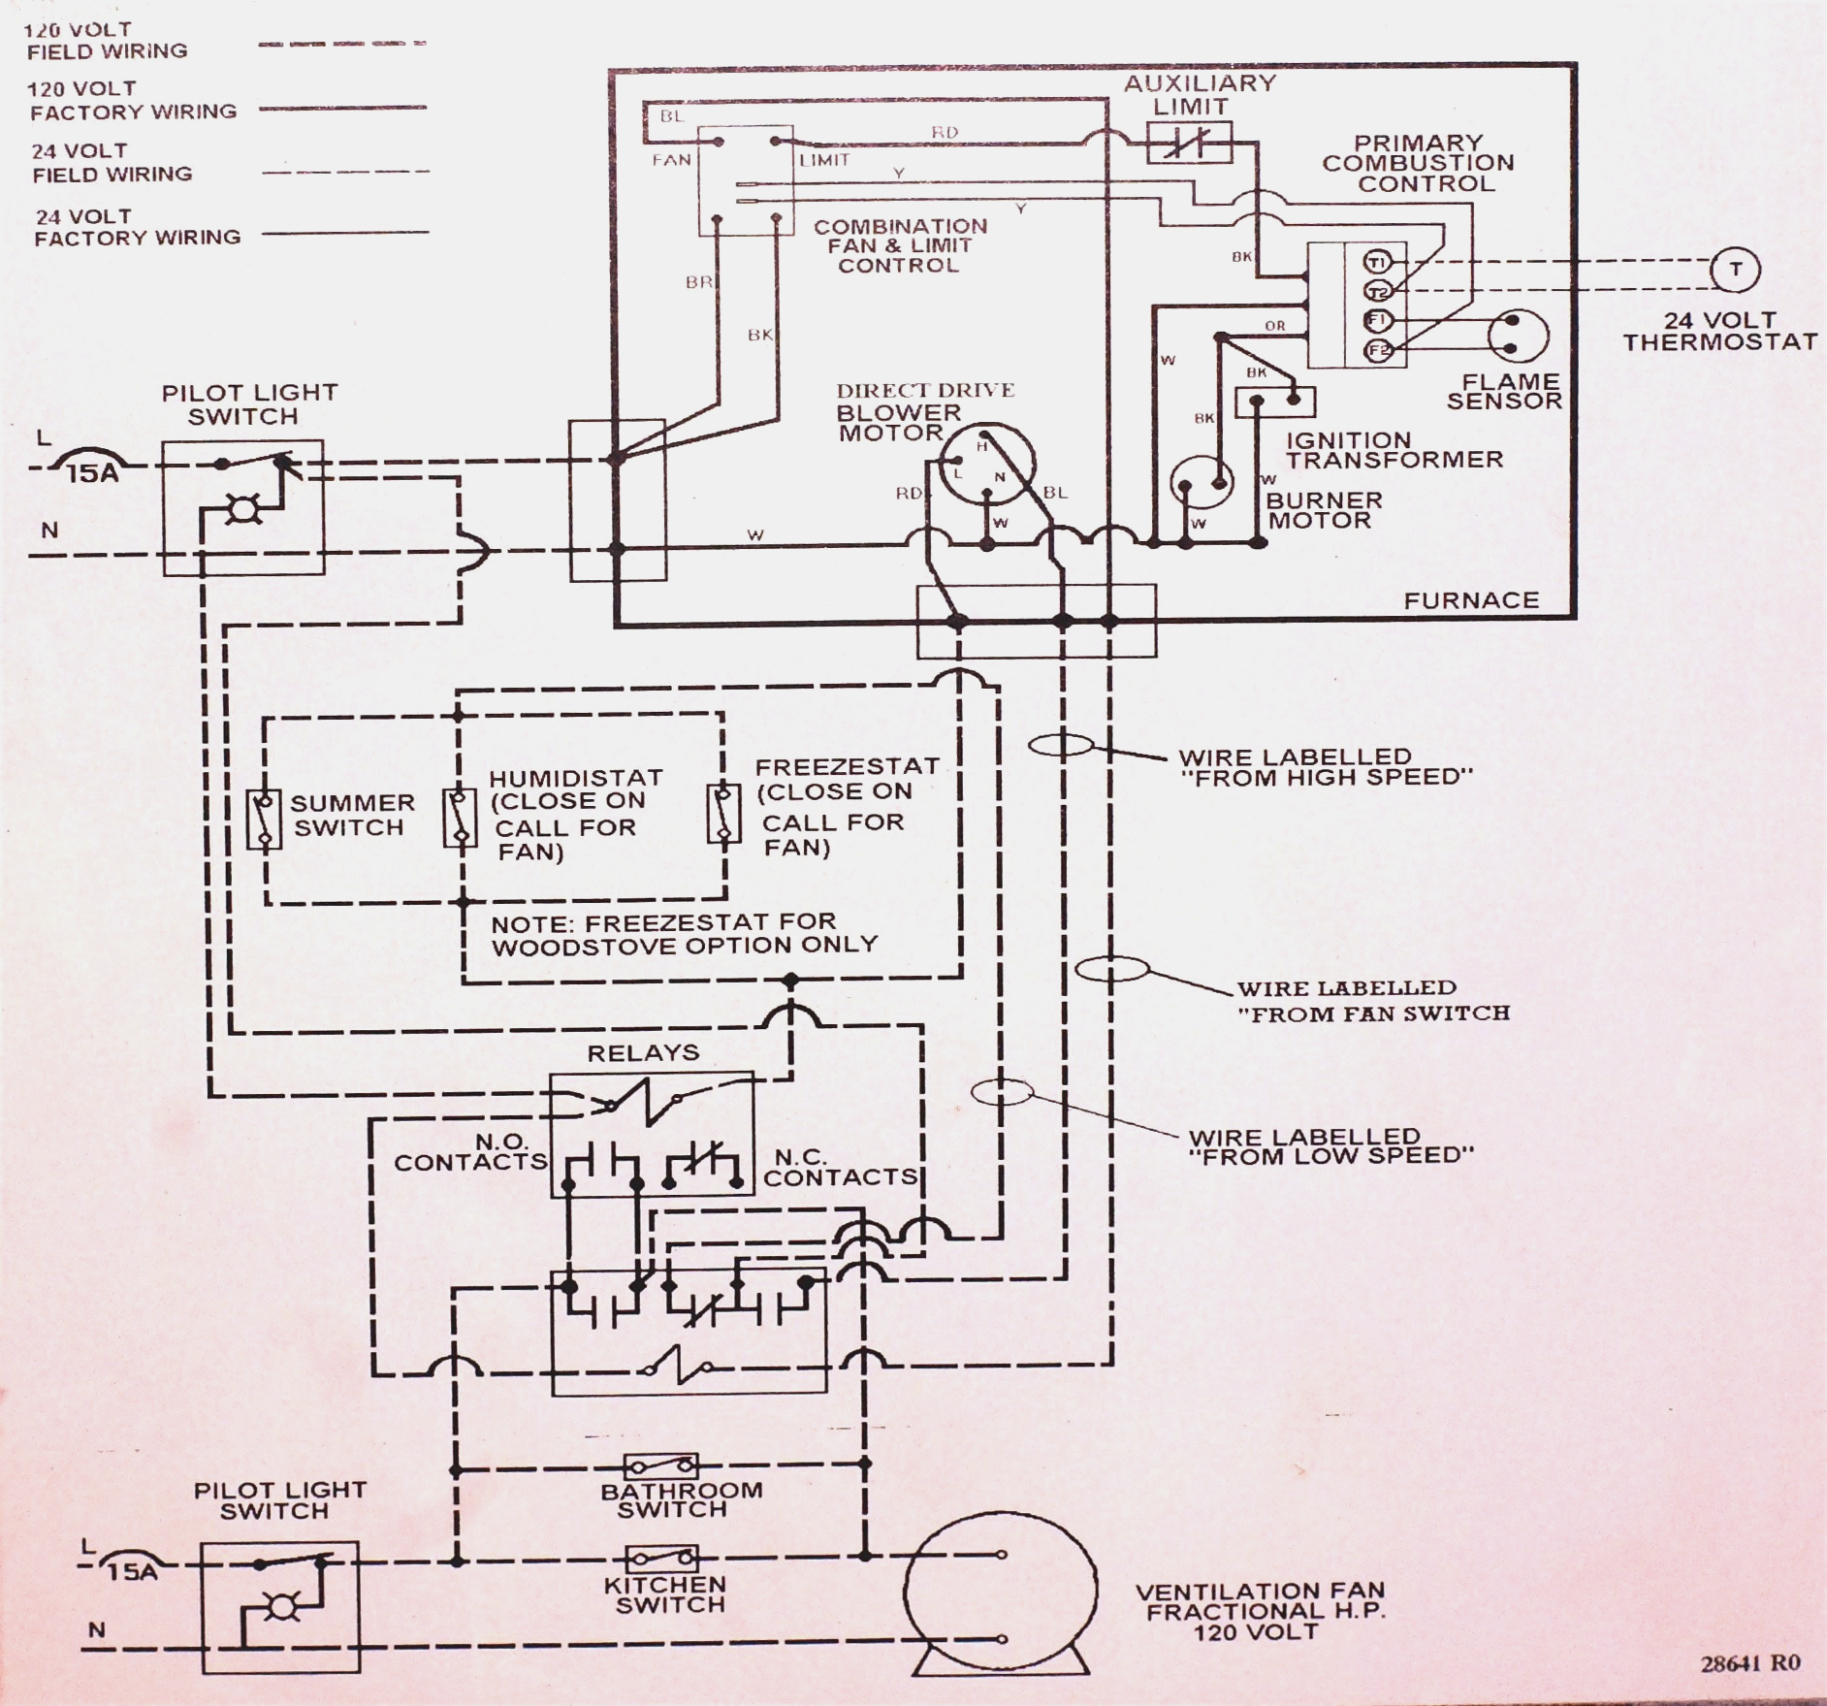 Old Furnace Wiring Diagram | Wiring Diagram - Furnace Wiring Diagram